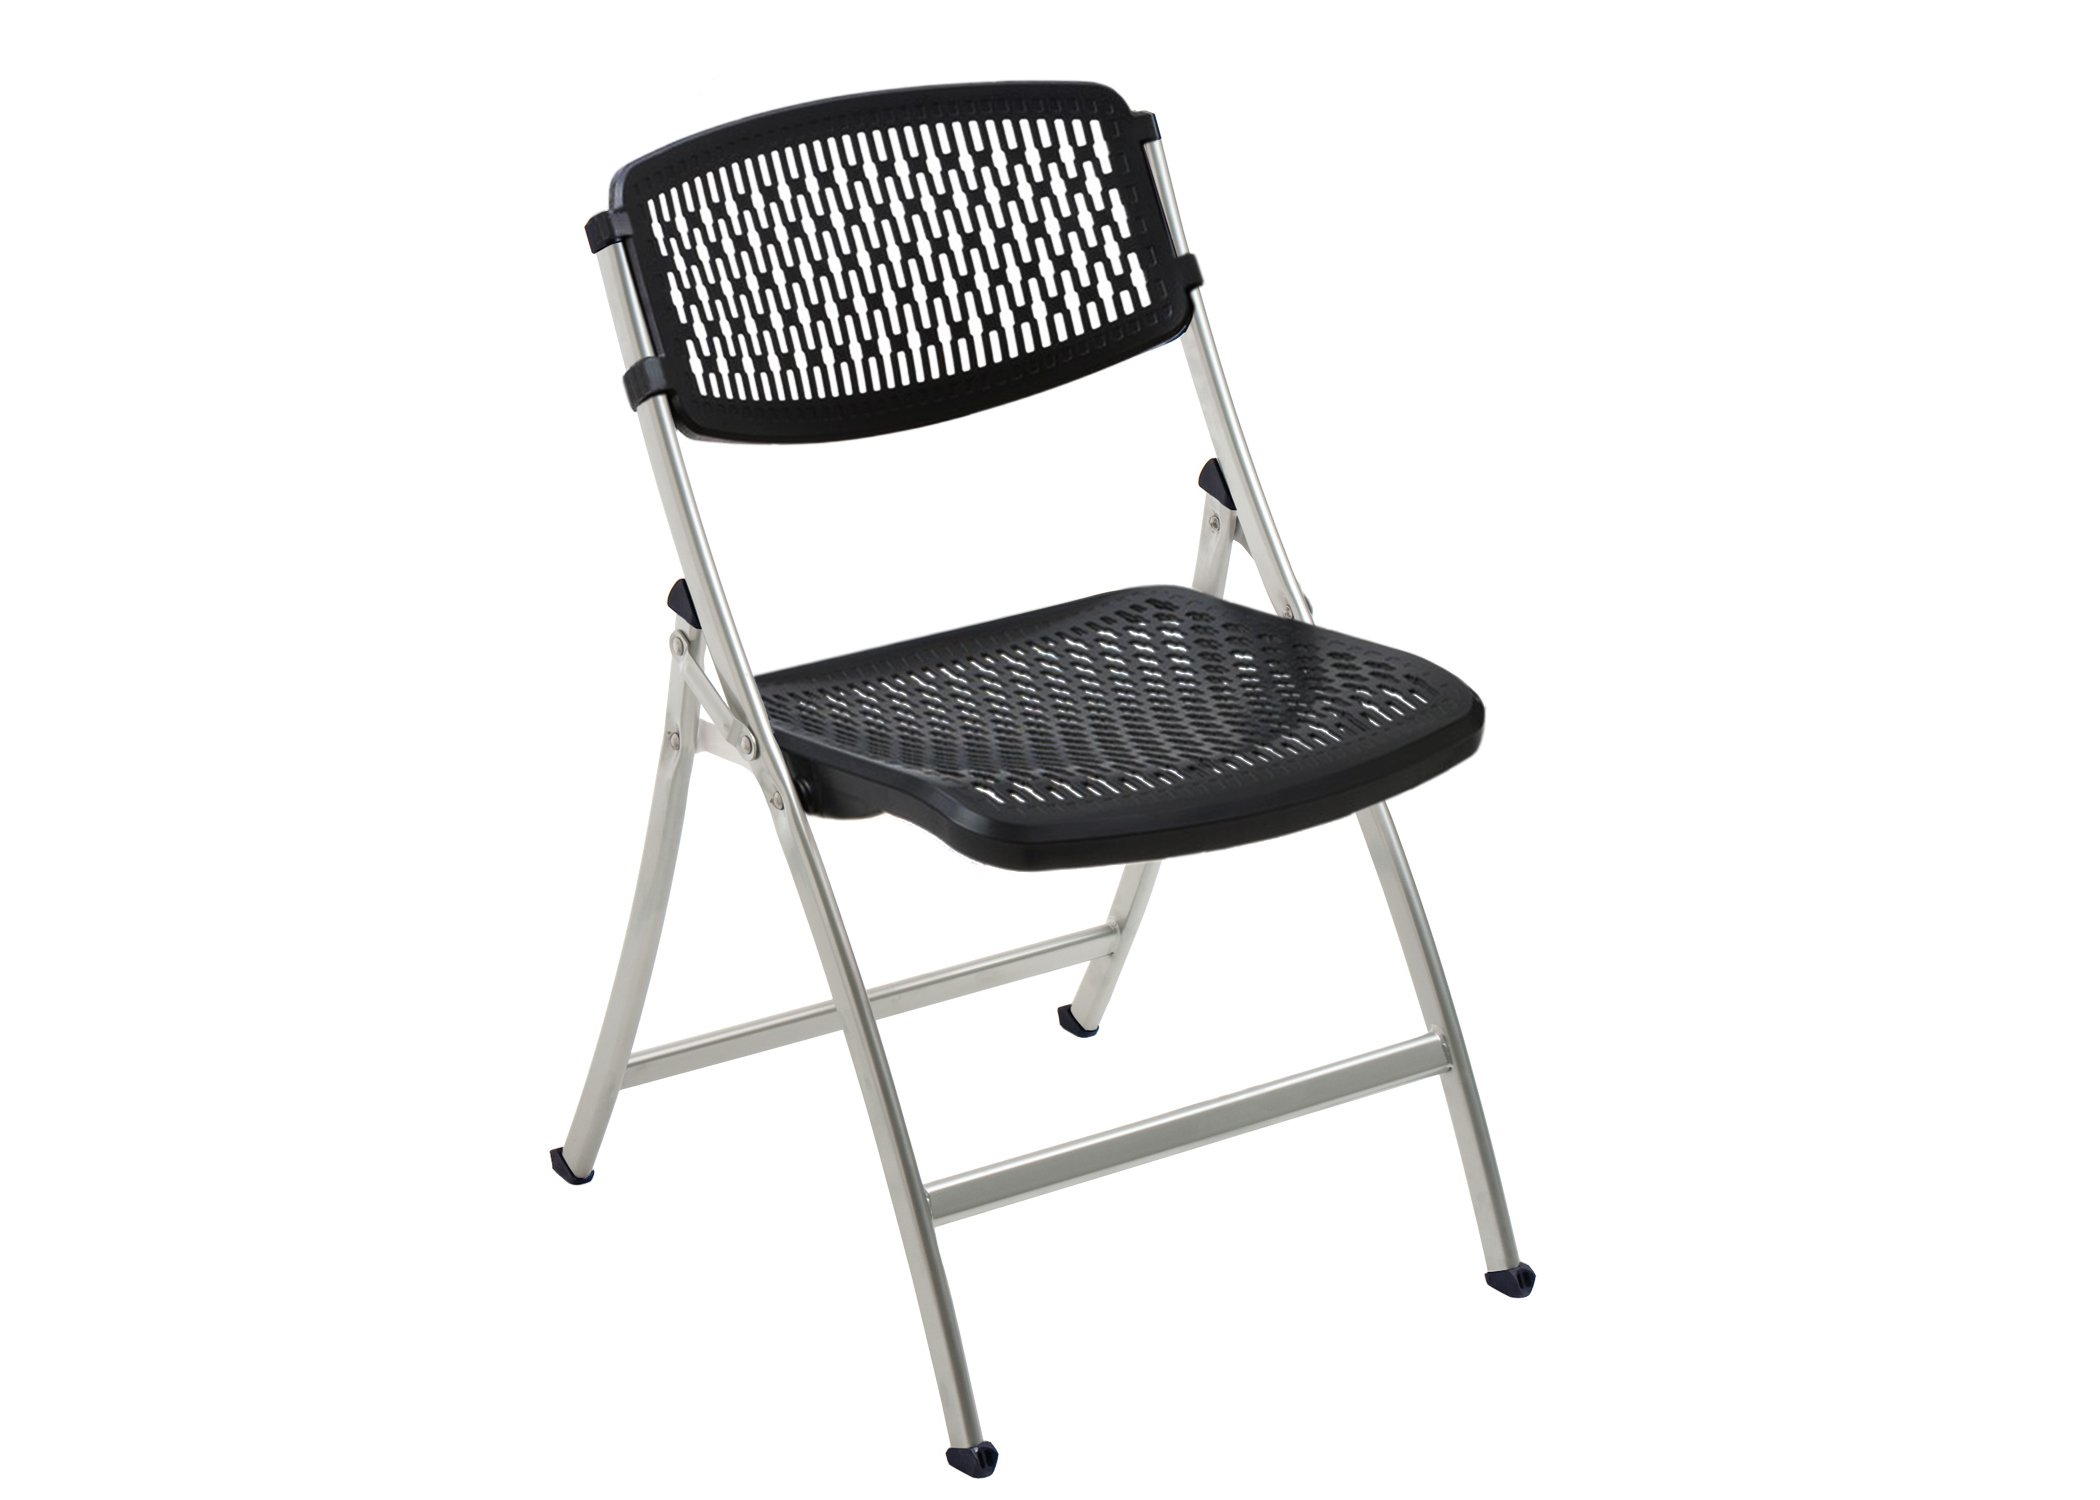 Flex e Folding Chair Black Silver 4 Pack Black Silver